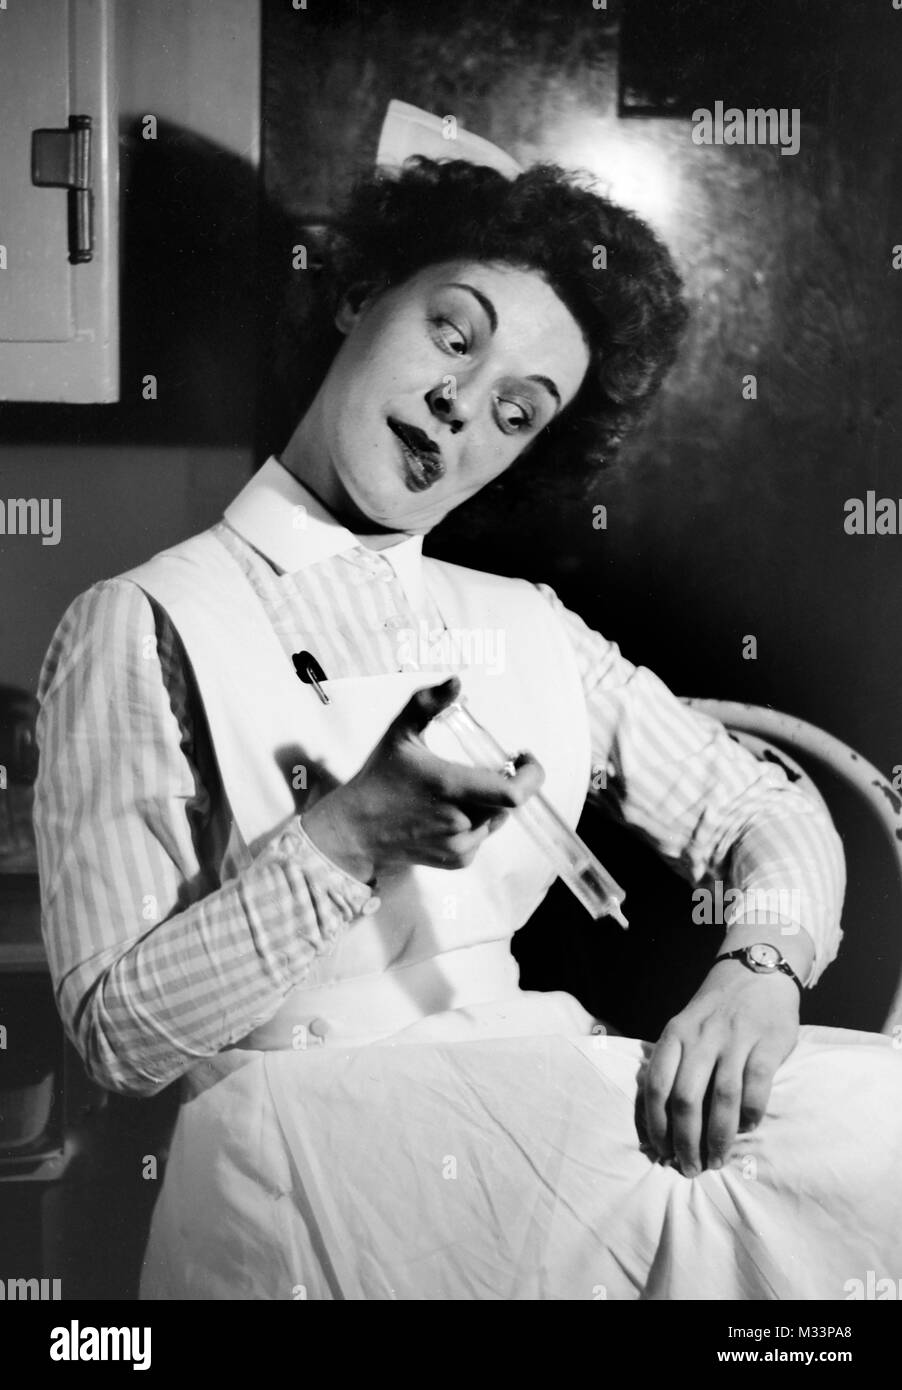 A goofy looking nurse playfully inoculates herself for humour, ca. 1910. Stock Photo